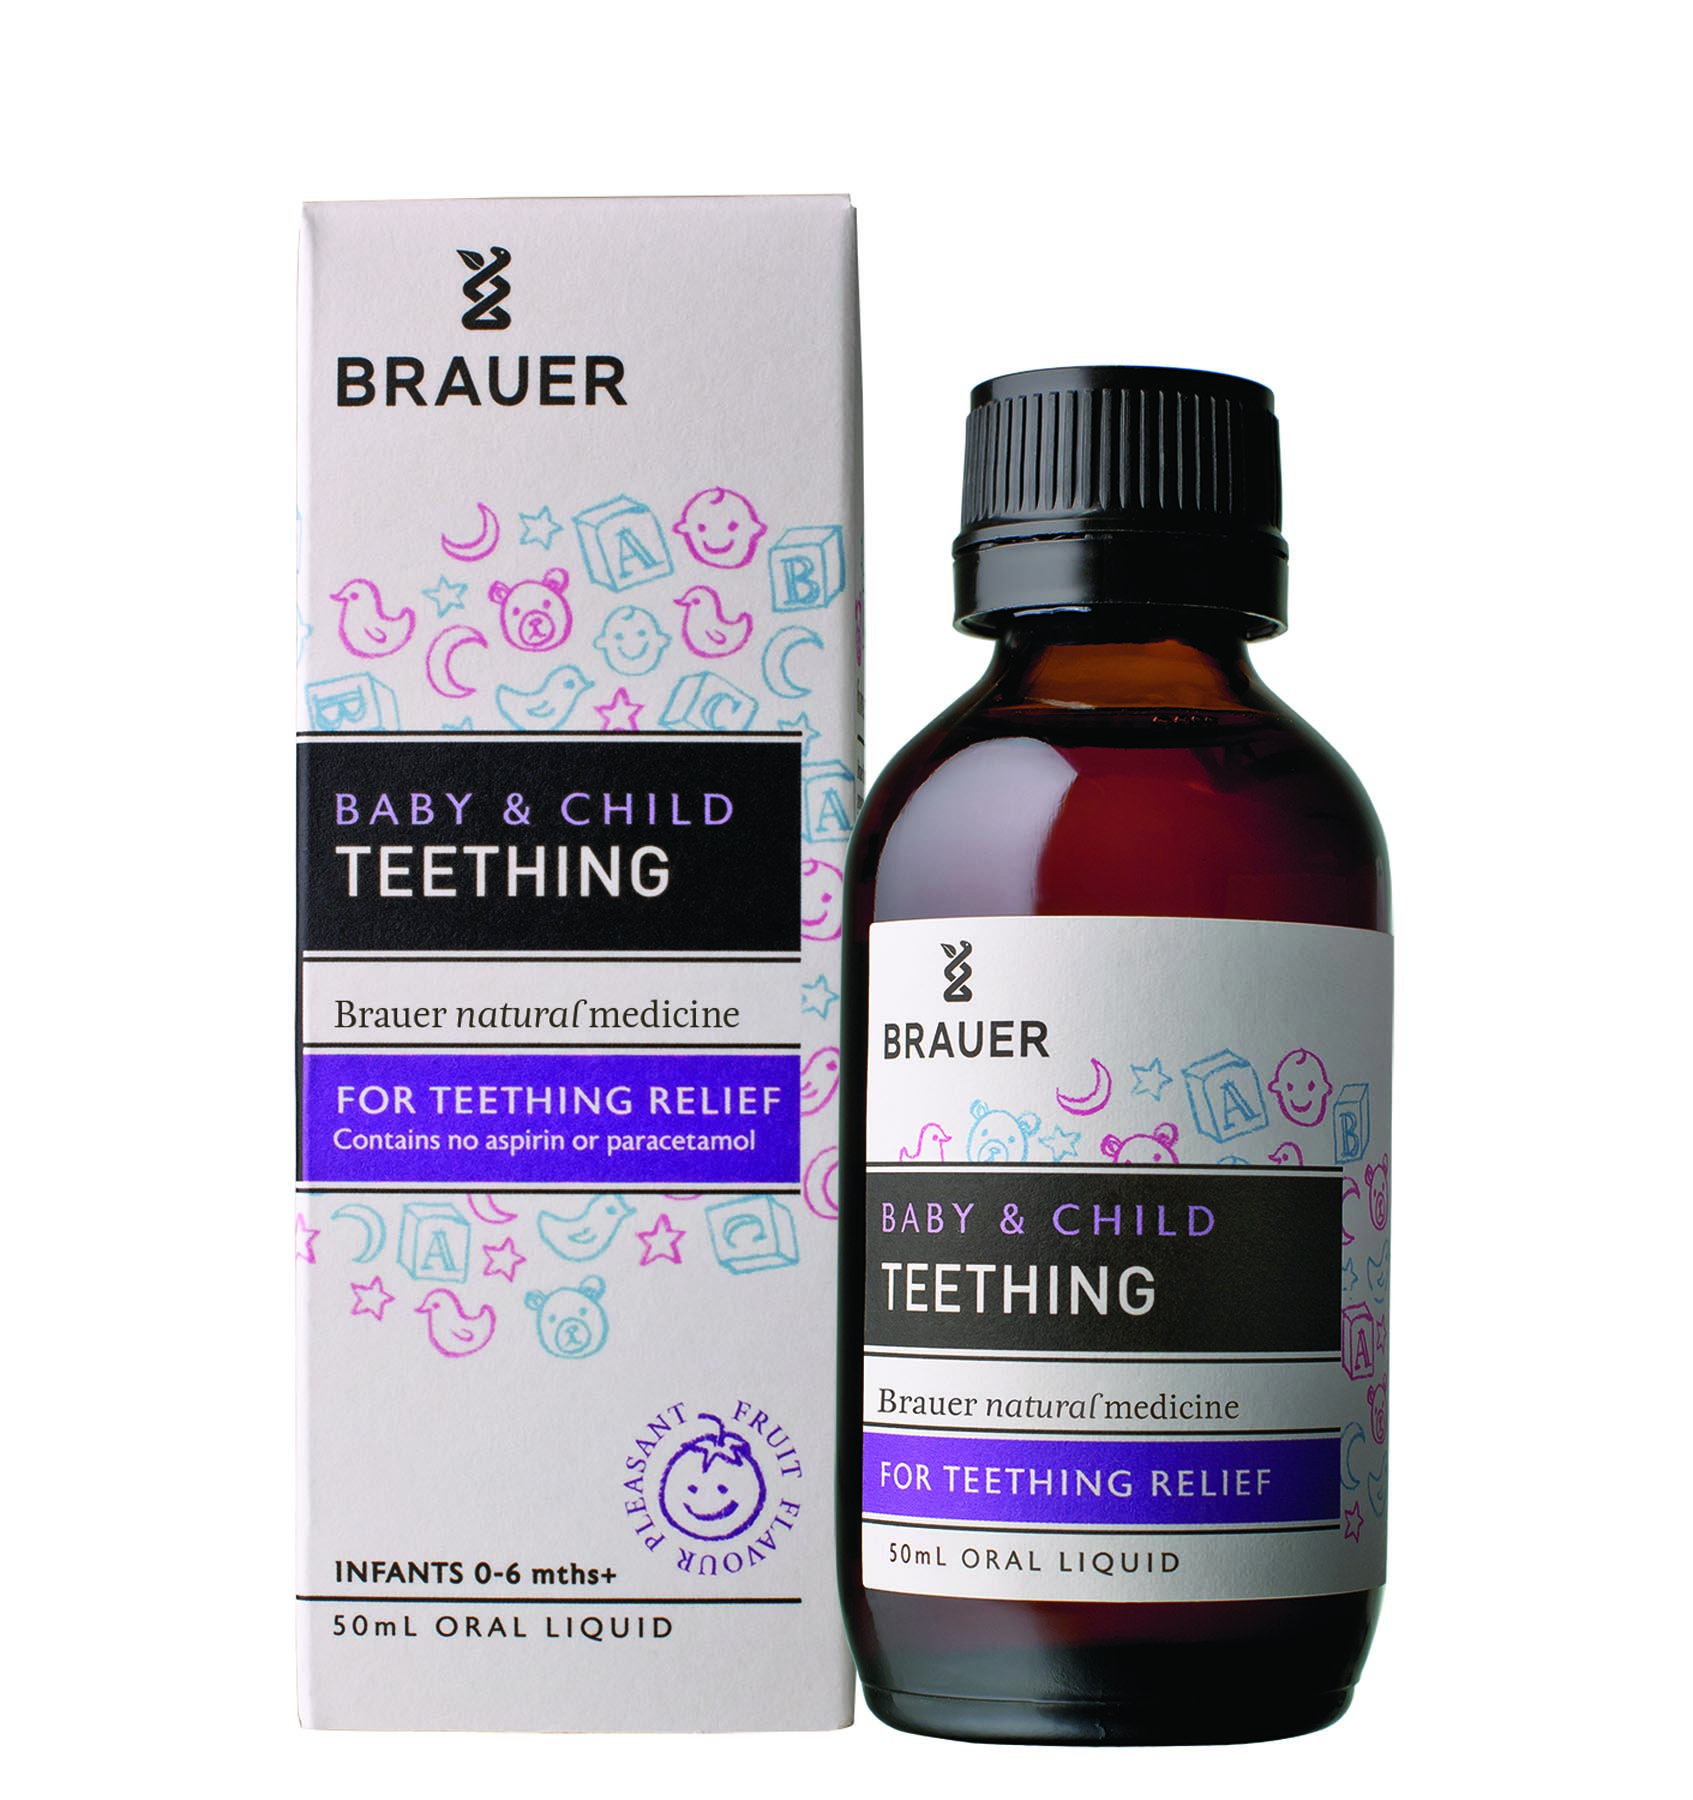 brauer baby and child teething natural remedy oral liquid